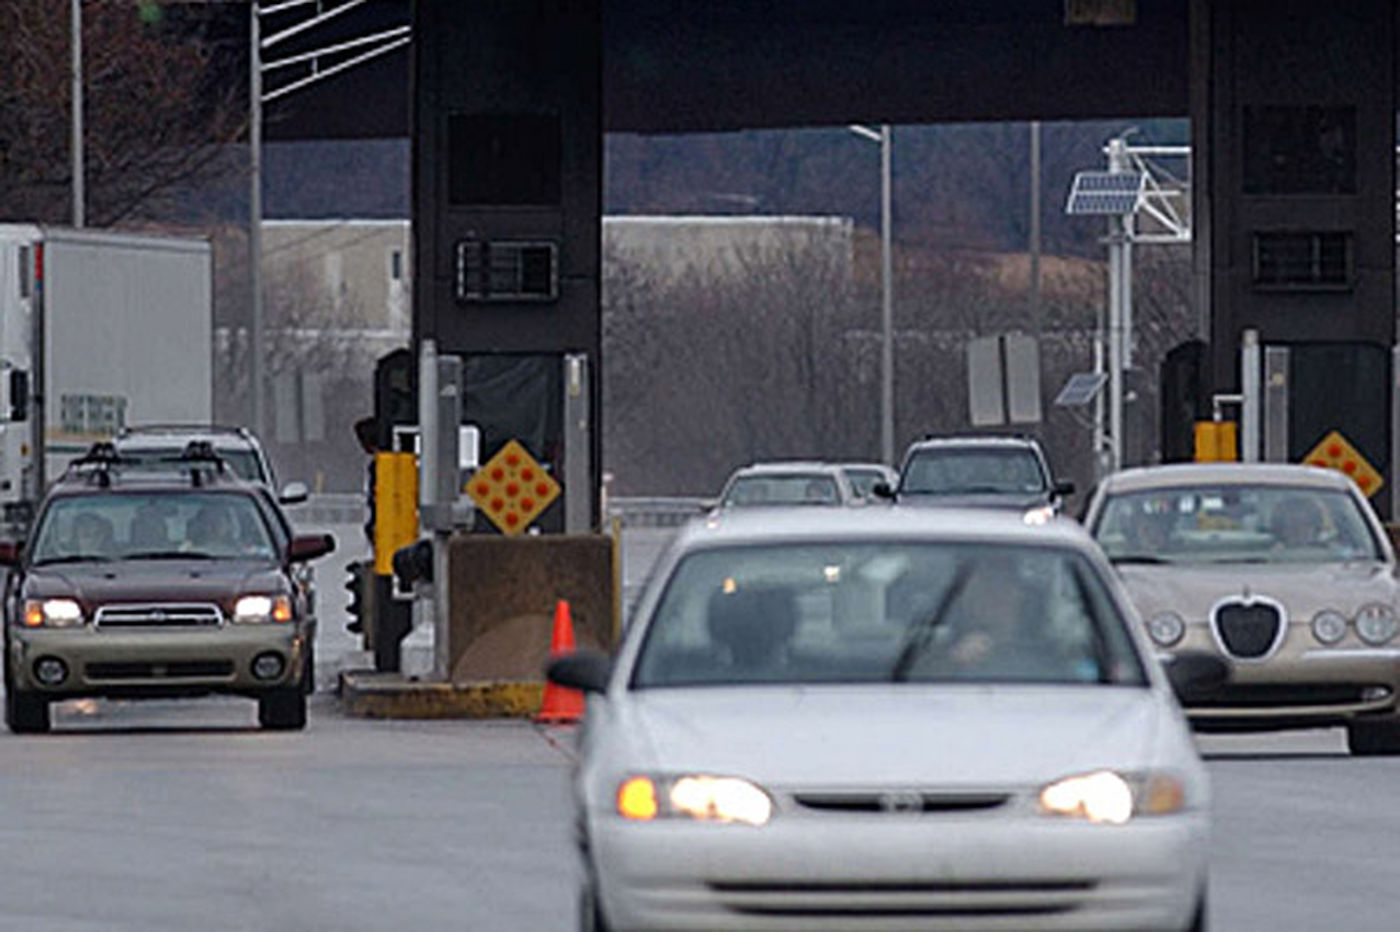 Pa. auditor probes why 7,000 workers, others get free rides on turnpike